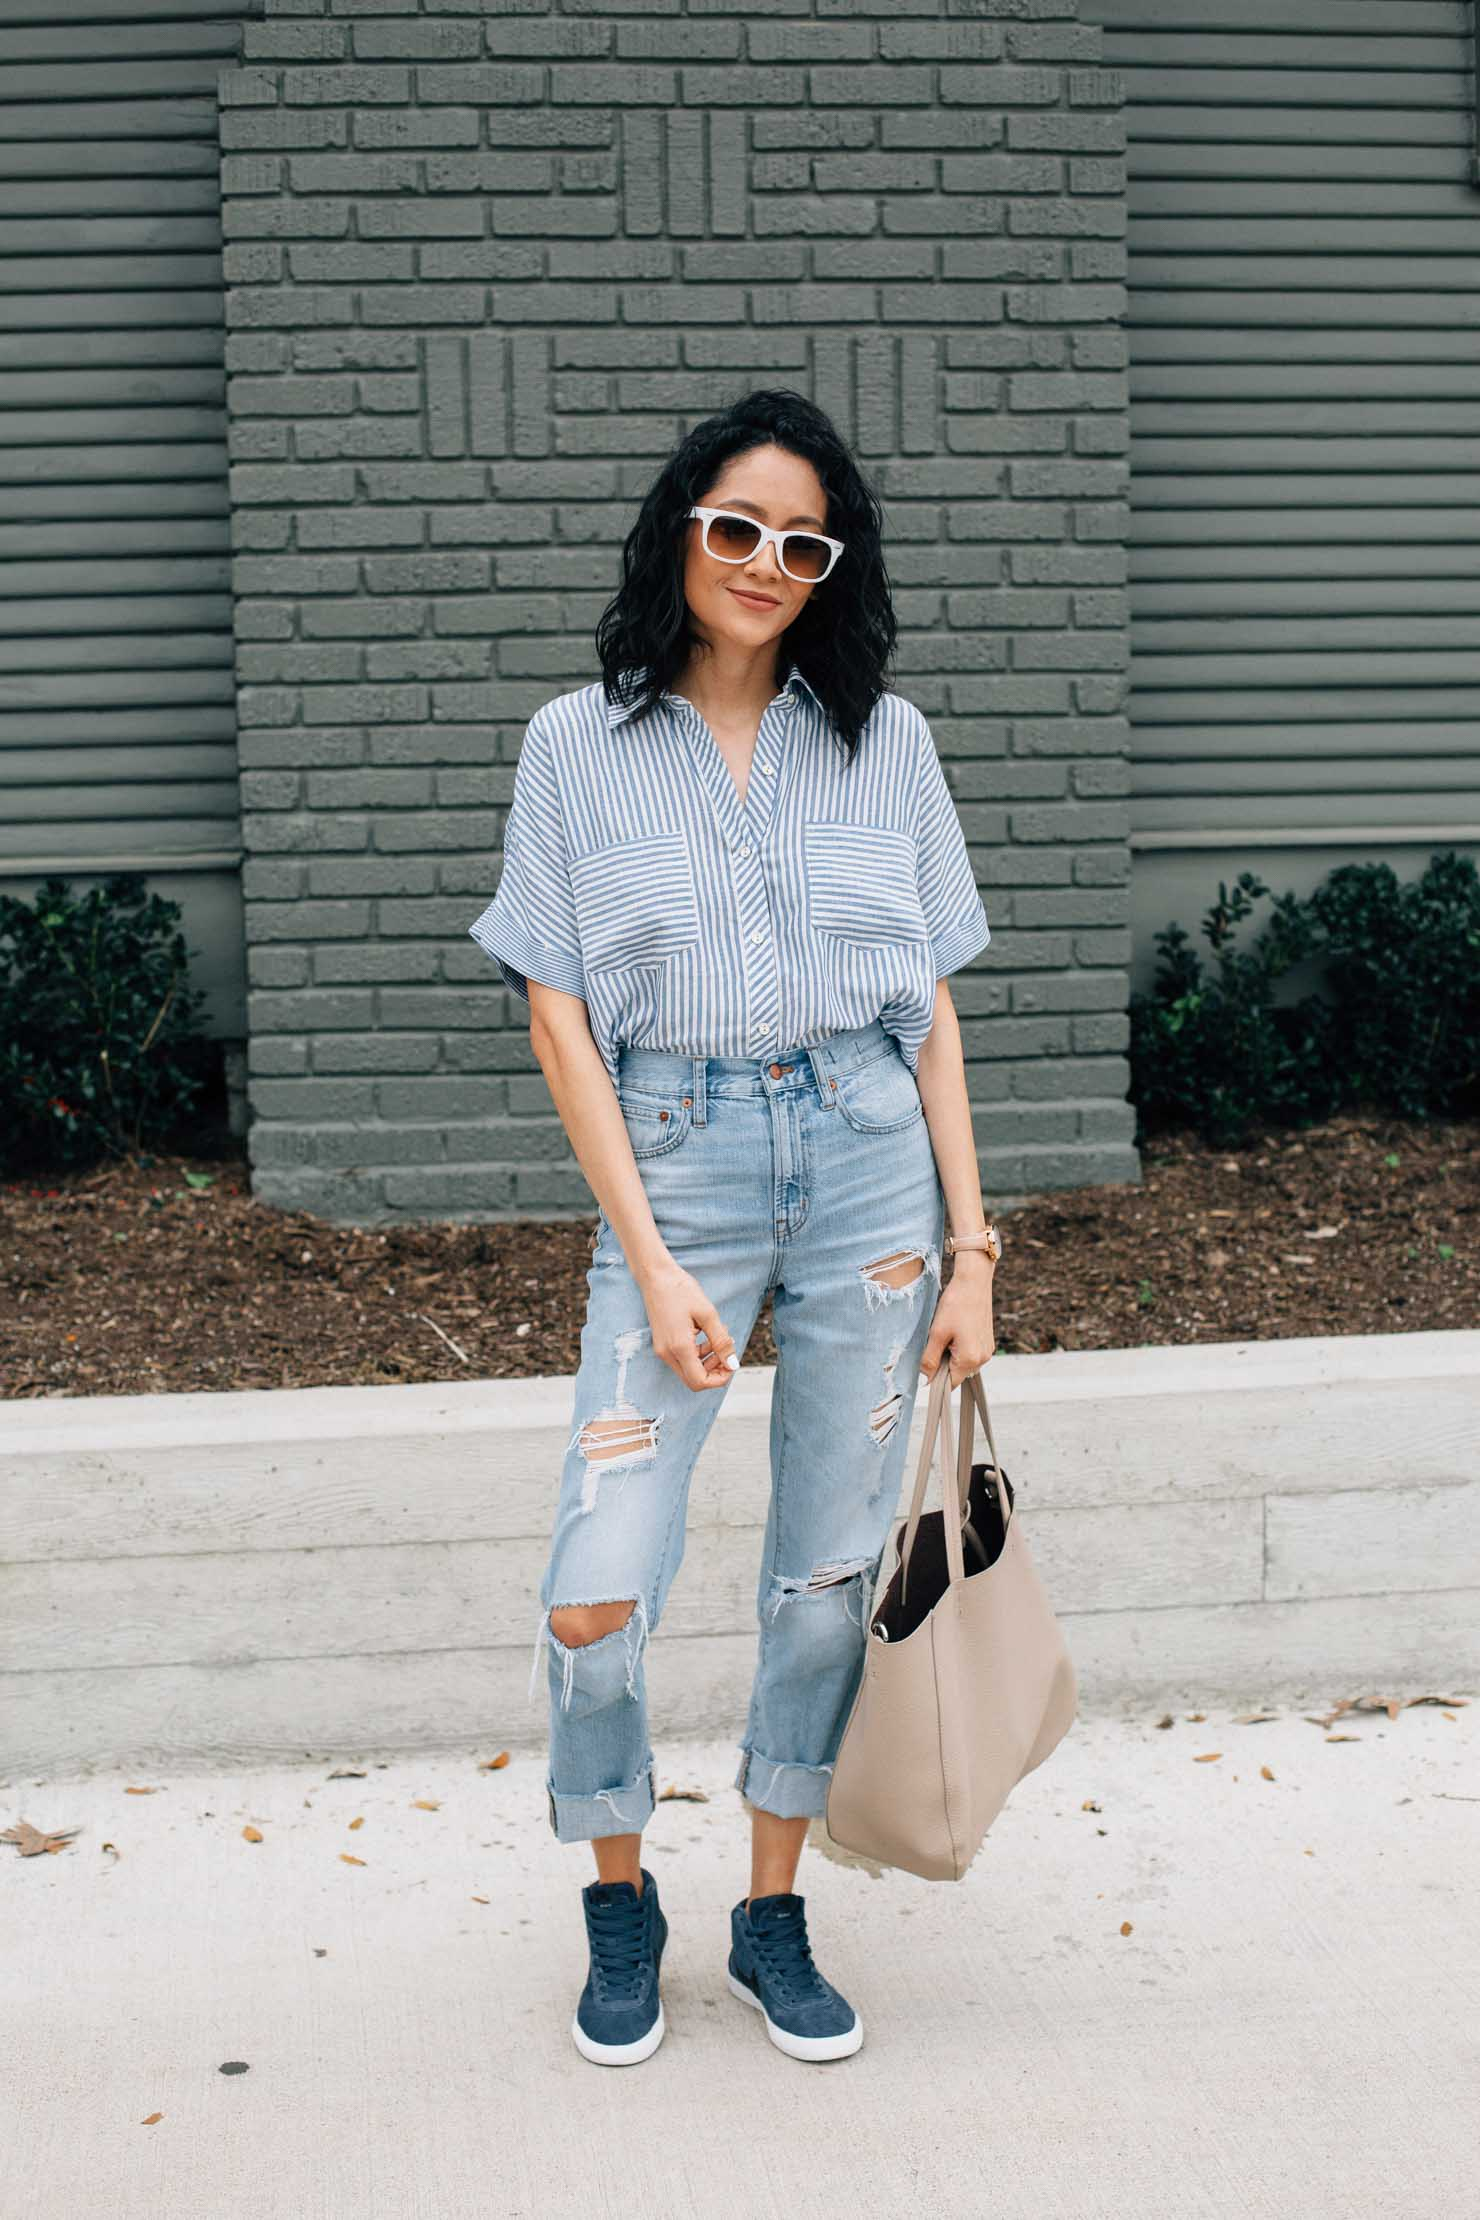 Houston based style blogger Lilly Beltran pairs high waisted denim with Nike hightop sneakers for a casual look